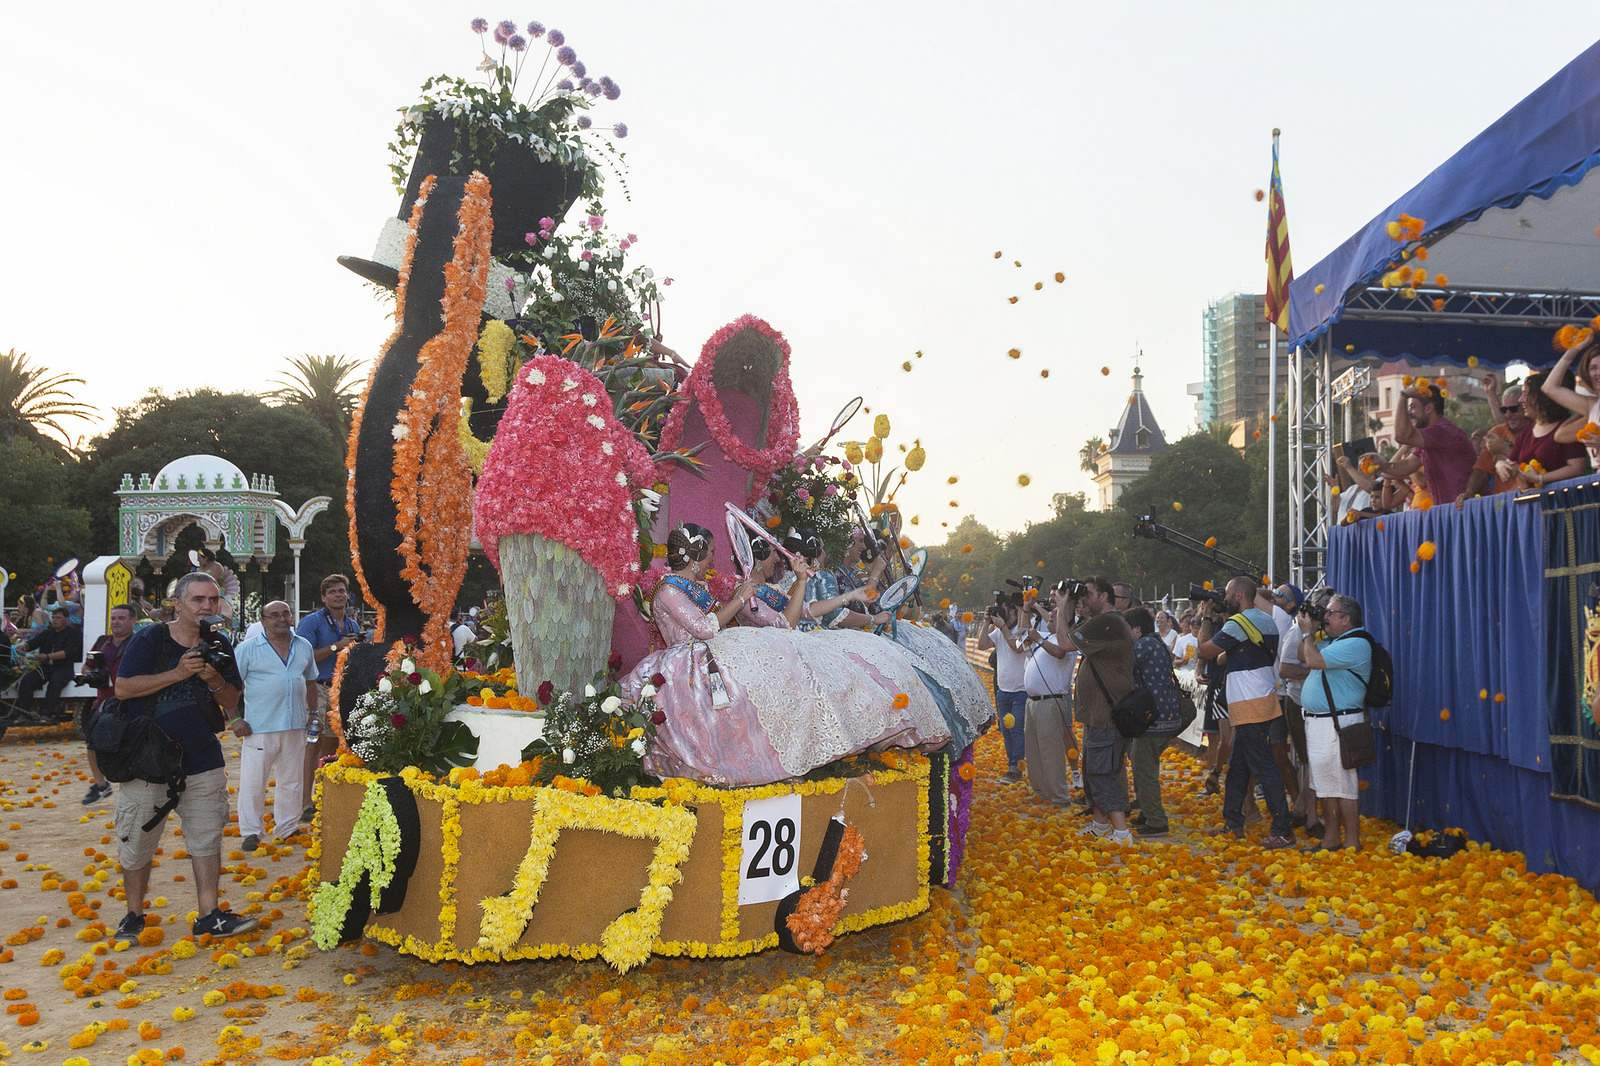 battle of flowers1 Battle of Flowers   Legendary Fiesta in Valencia